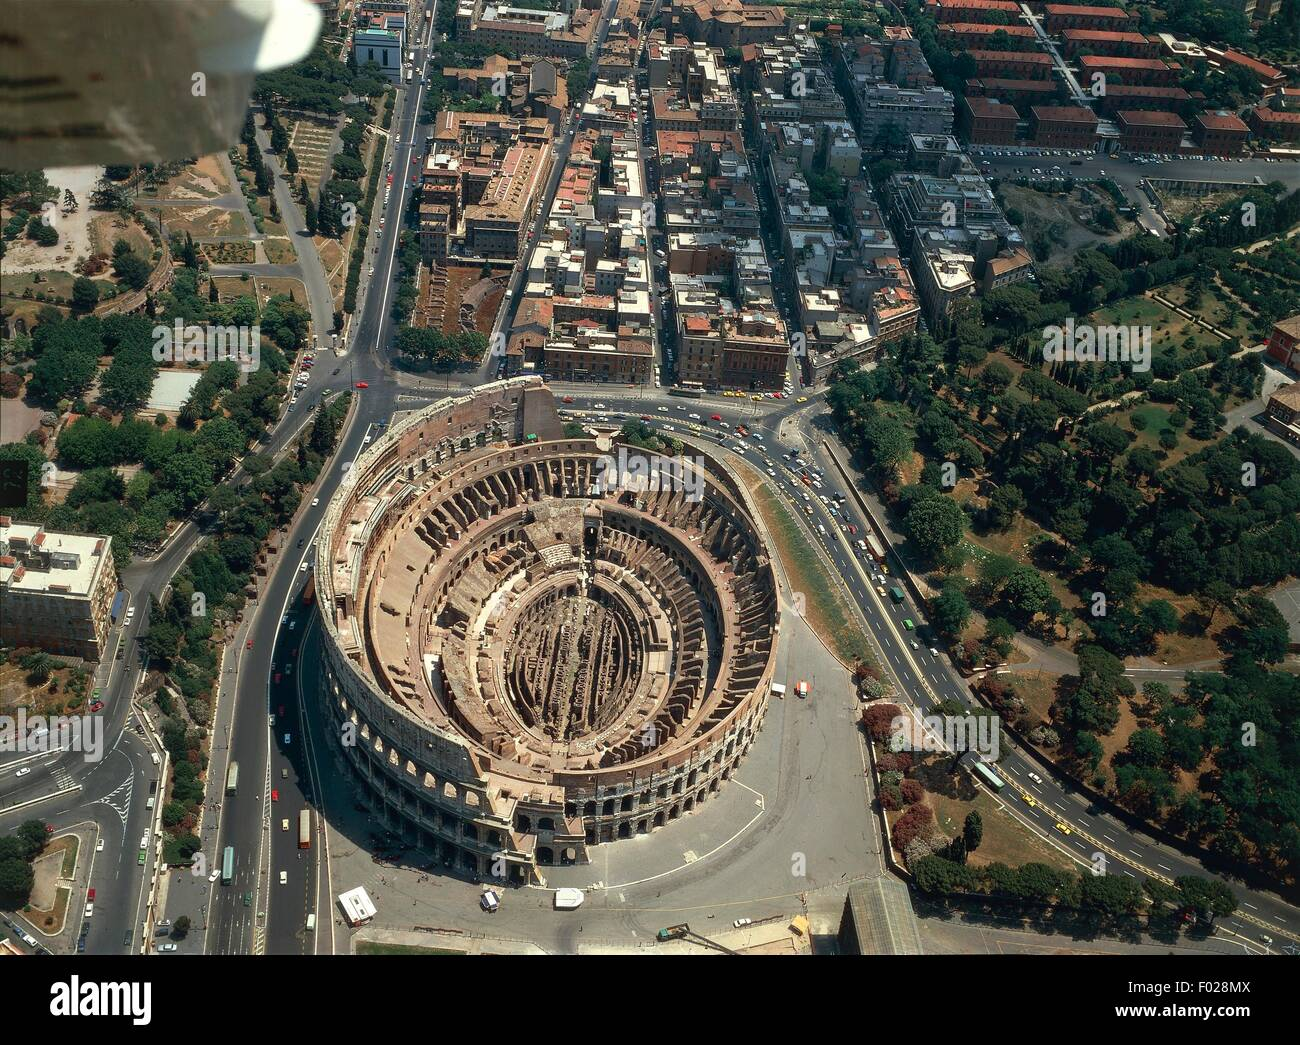 Aerial View Of Flavian Amphitheater Colosseum In Rome